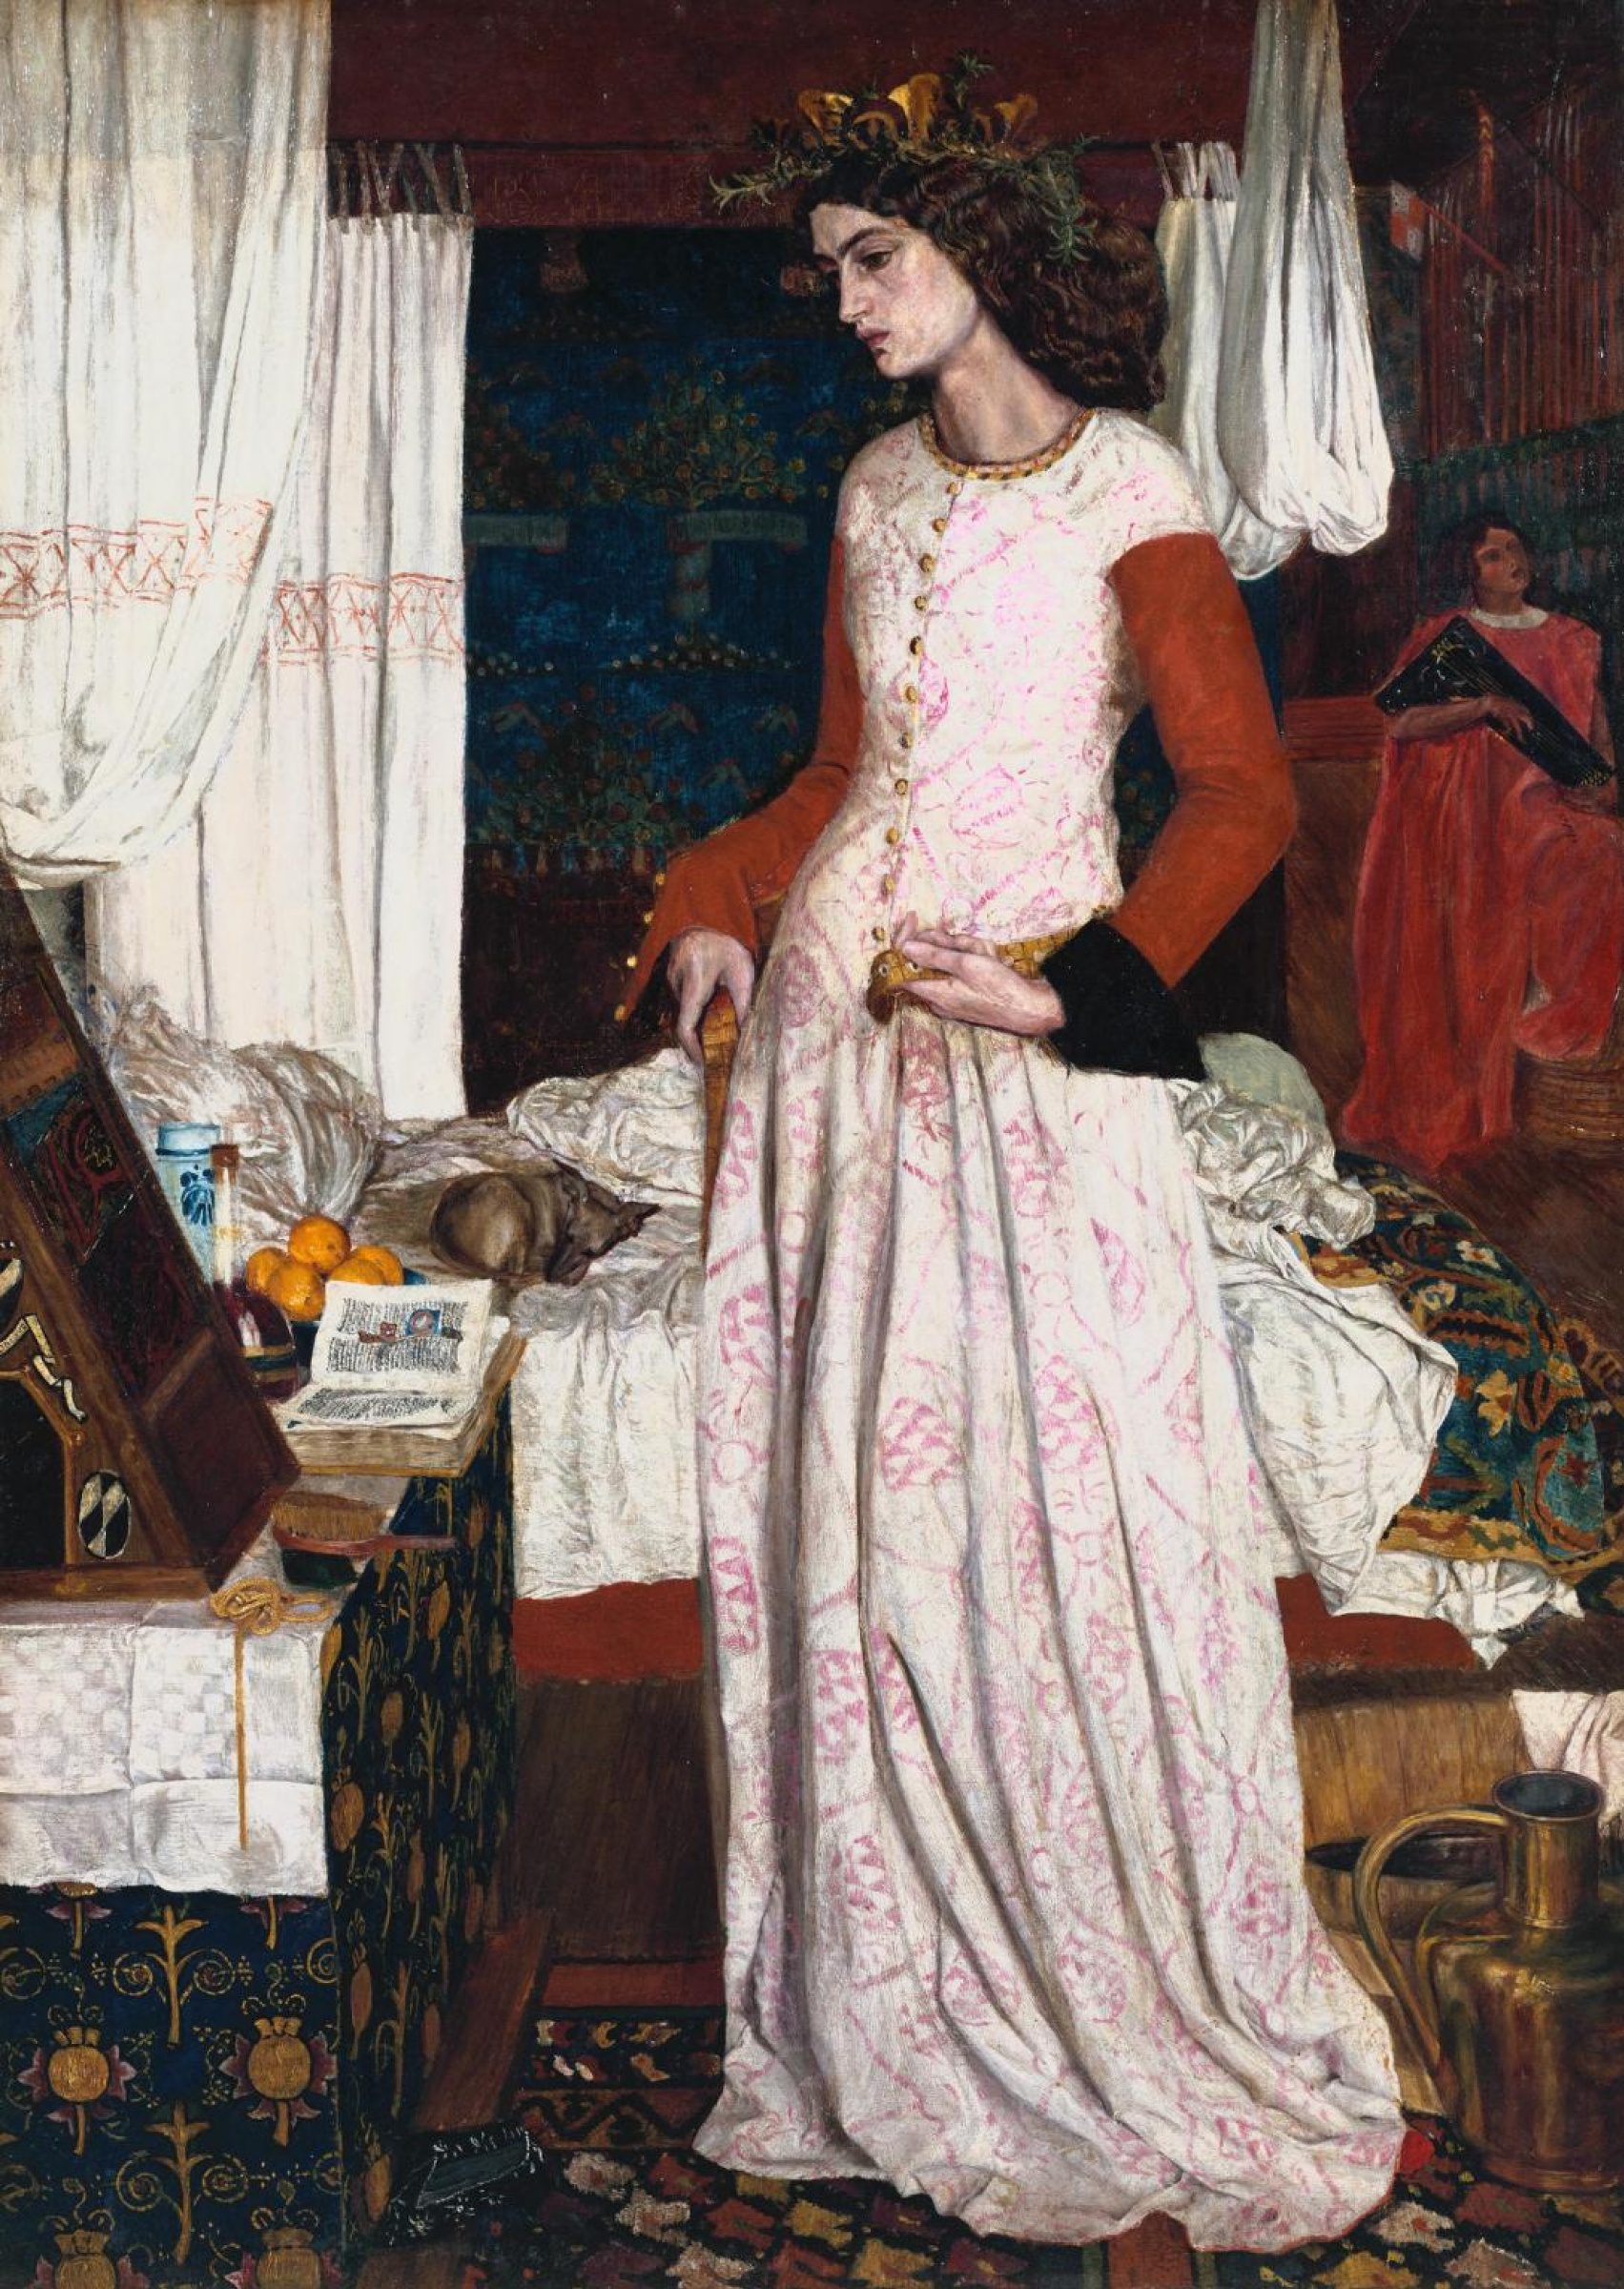 William Morris.  La belle Isolde (Portrait de l'épouse de l'artiste Jane Morris)